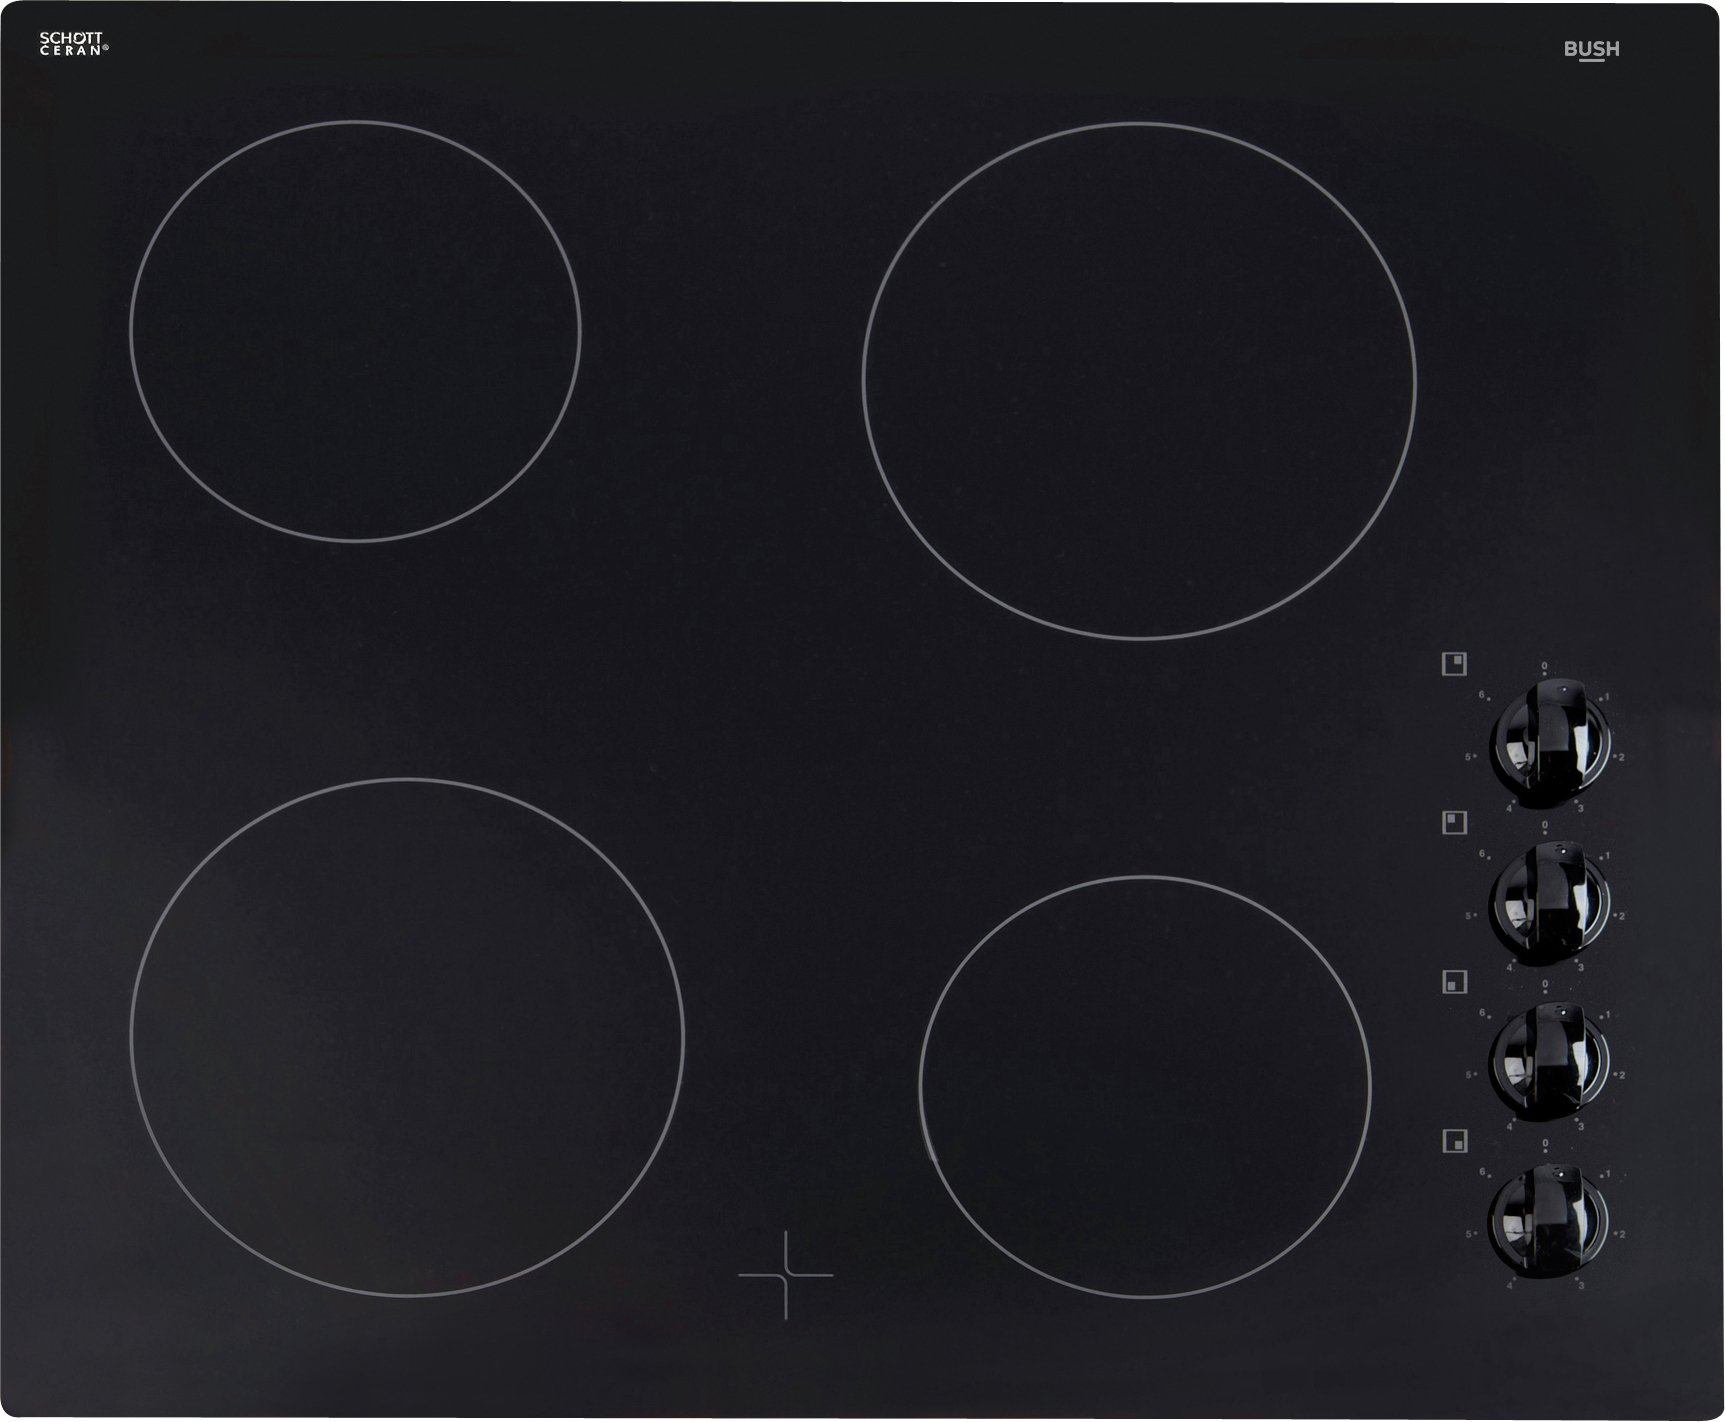 Bush - A60CK - Ceramic Electric Hob - Black